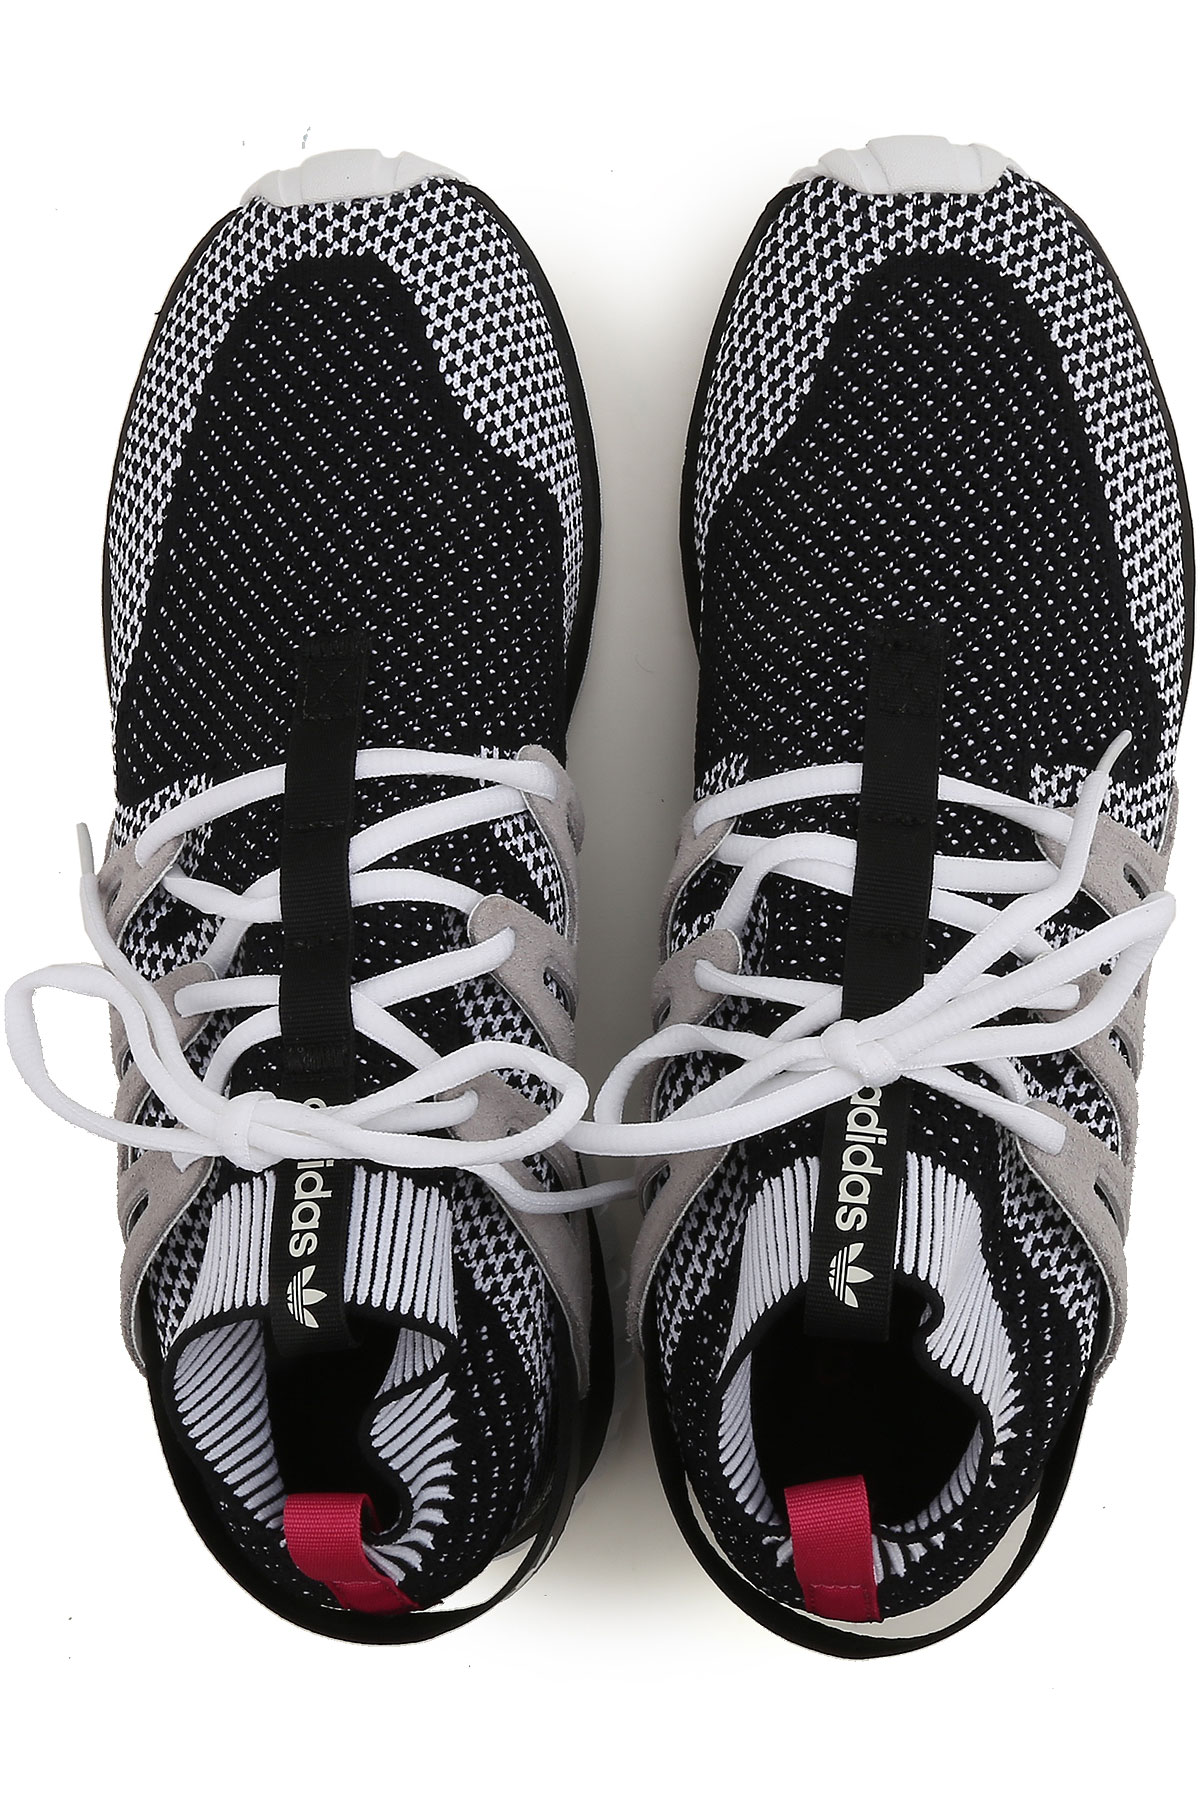 super popular c98ac fbacc Mens Shoes Adidas, Style code: s74918--